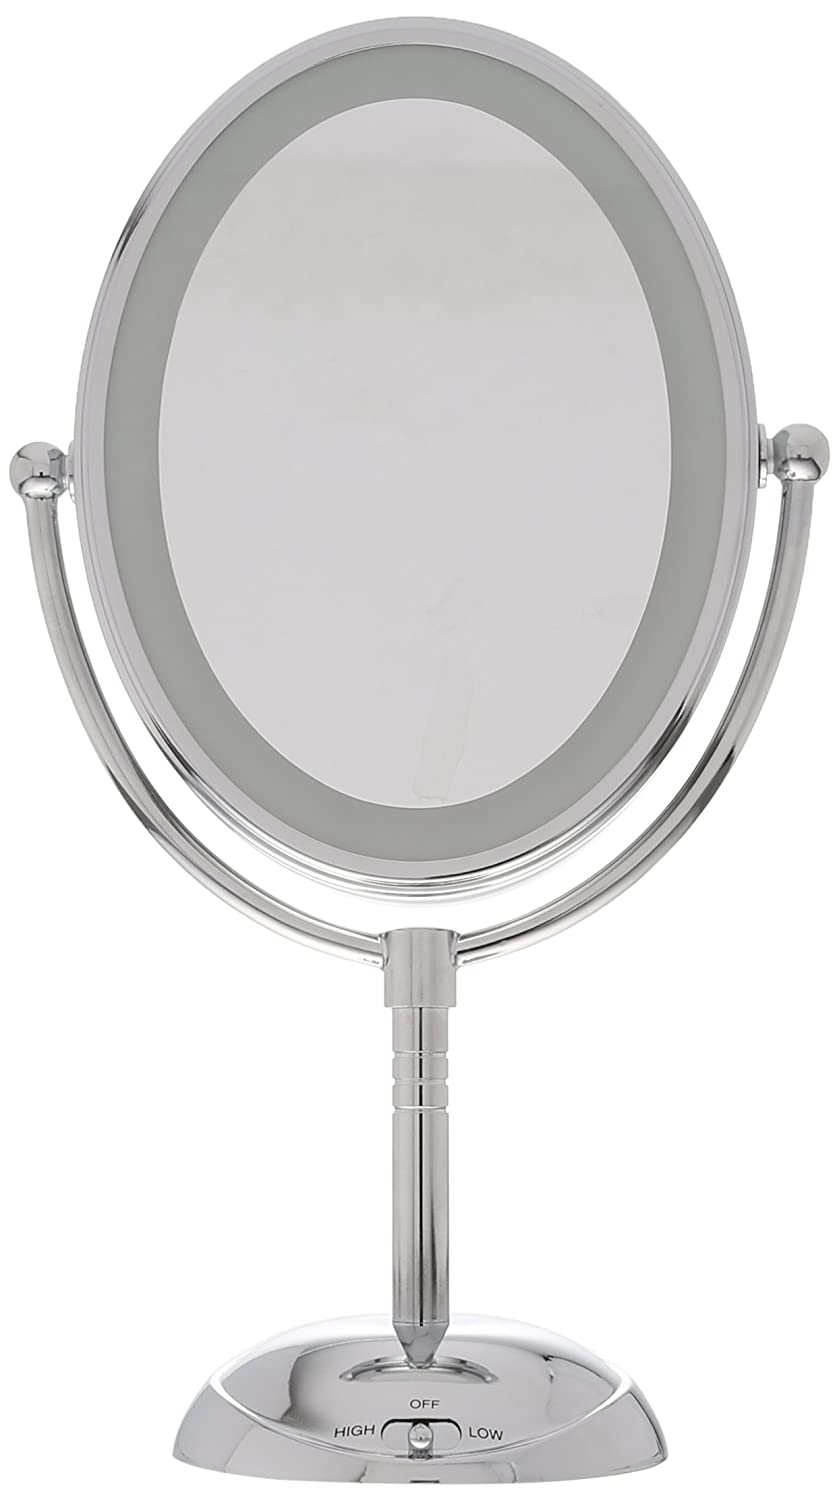 Makeup Mirrors Reflections Led Lighted Collection Mirror